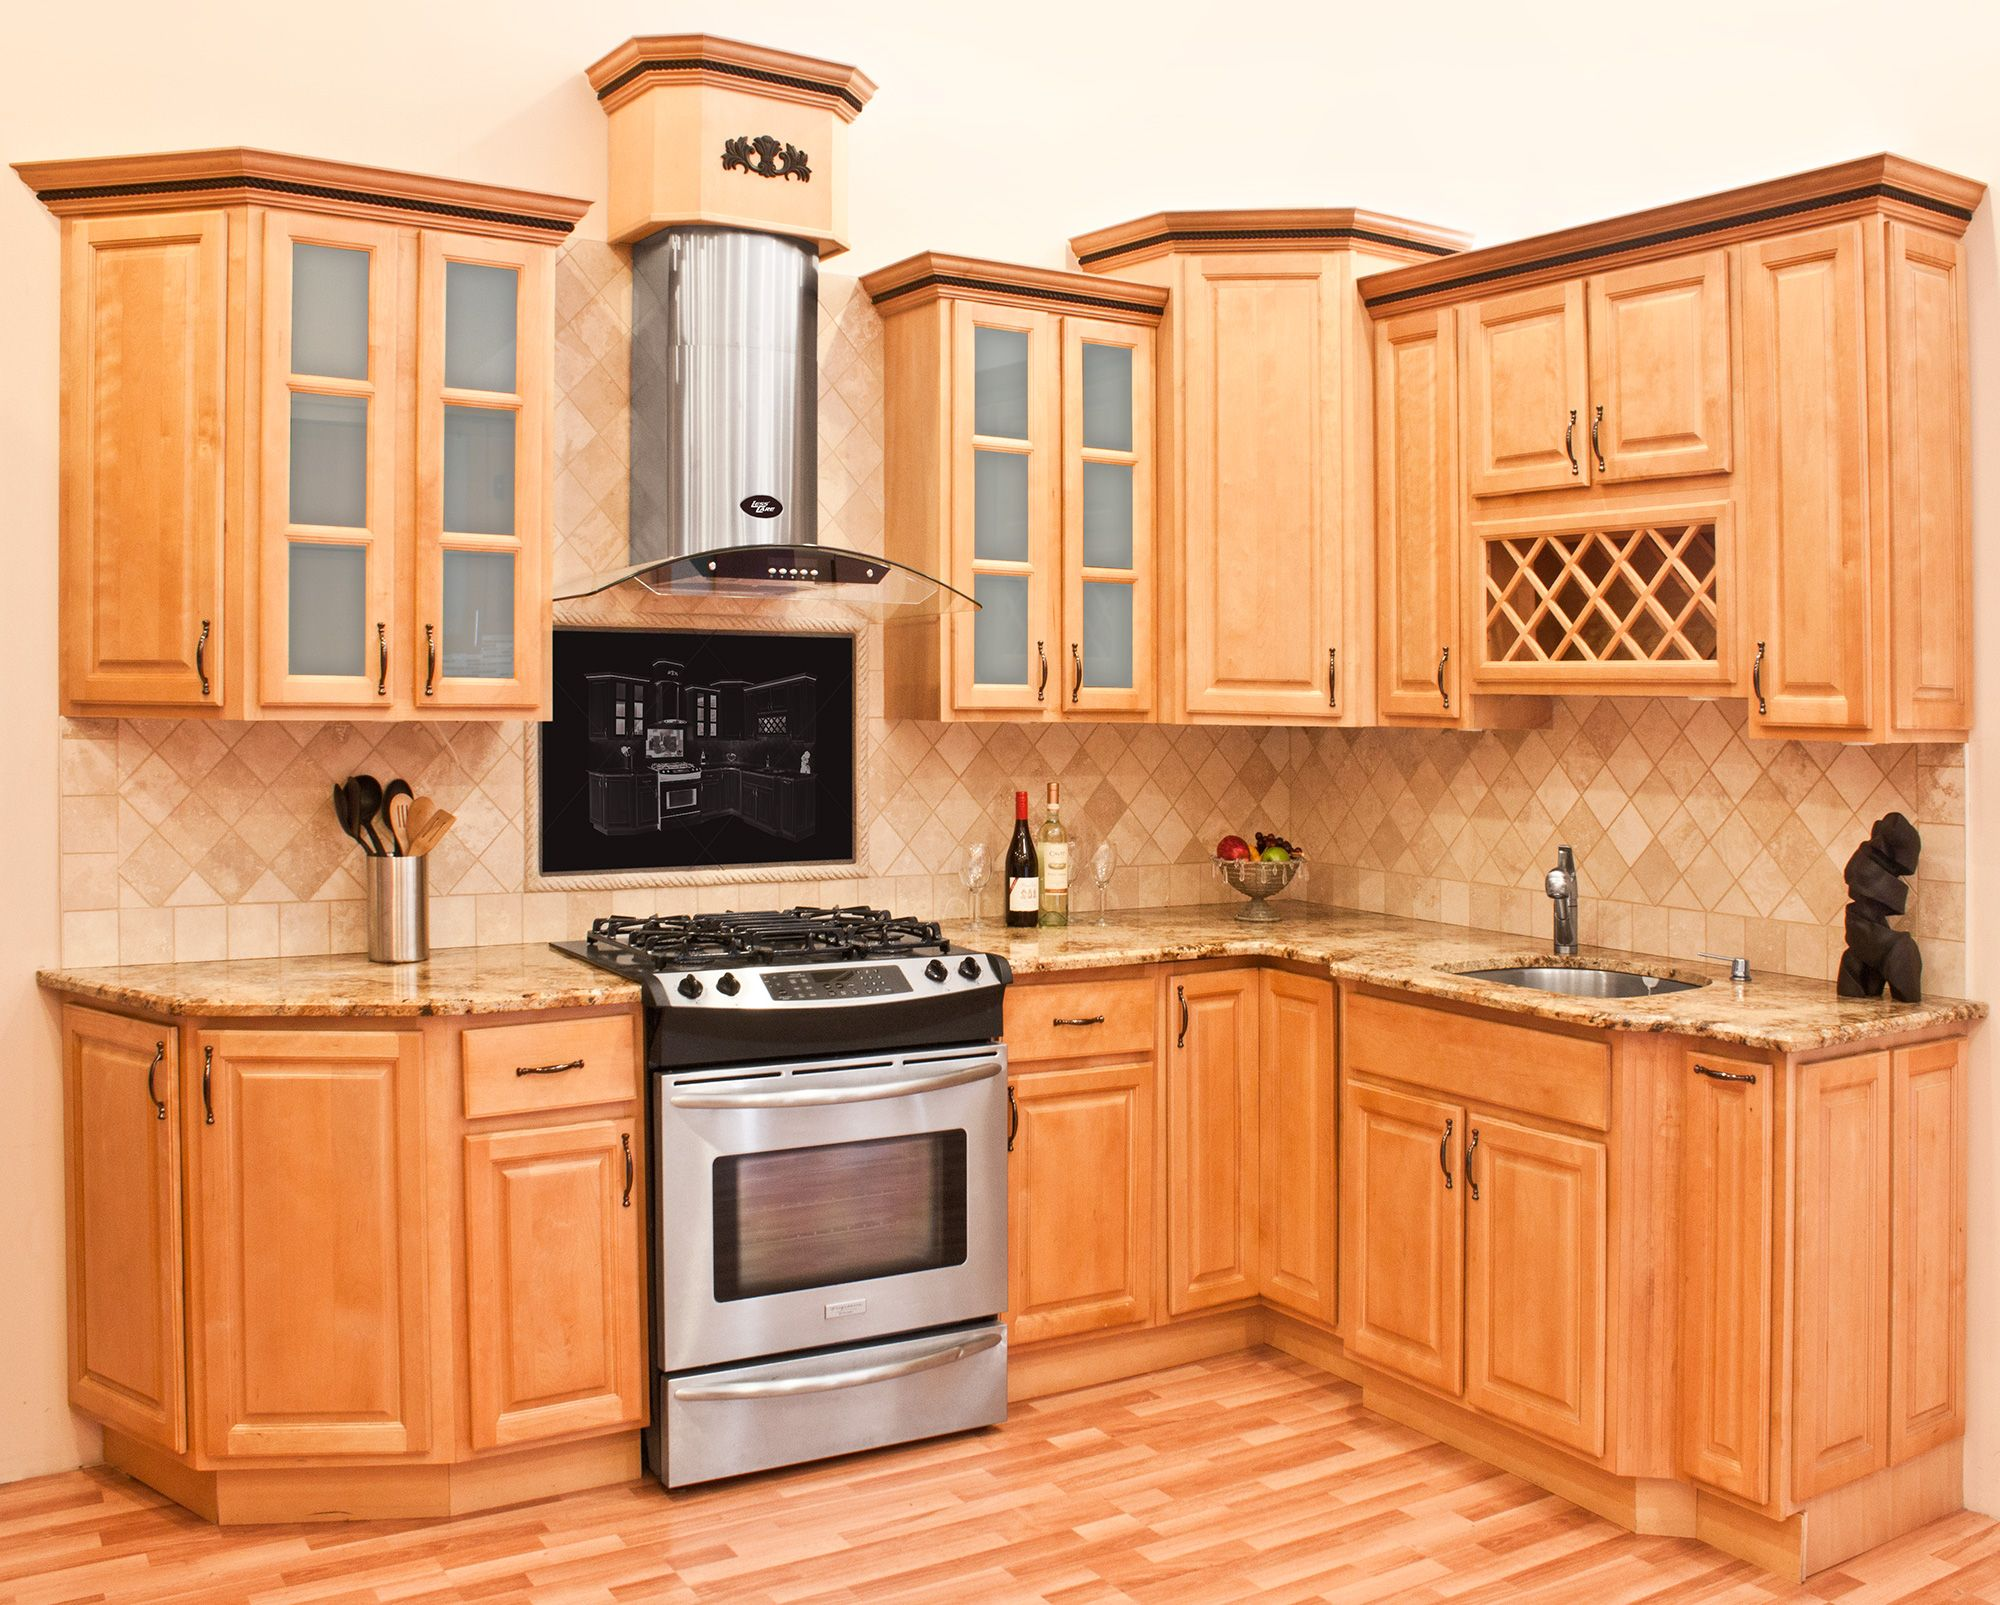 I love the cabinet above the exhaust fan Ideas for kitchen